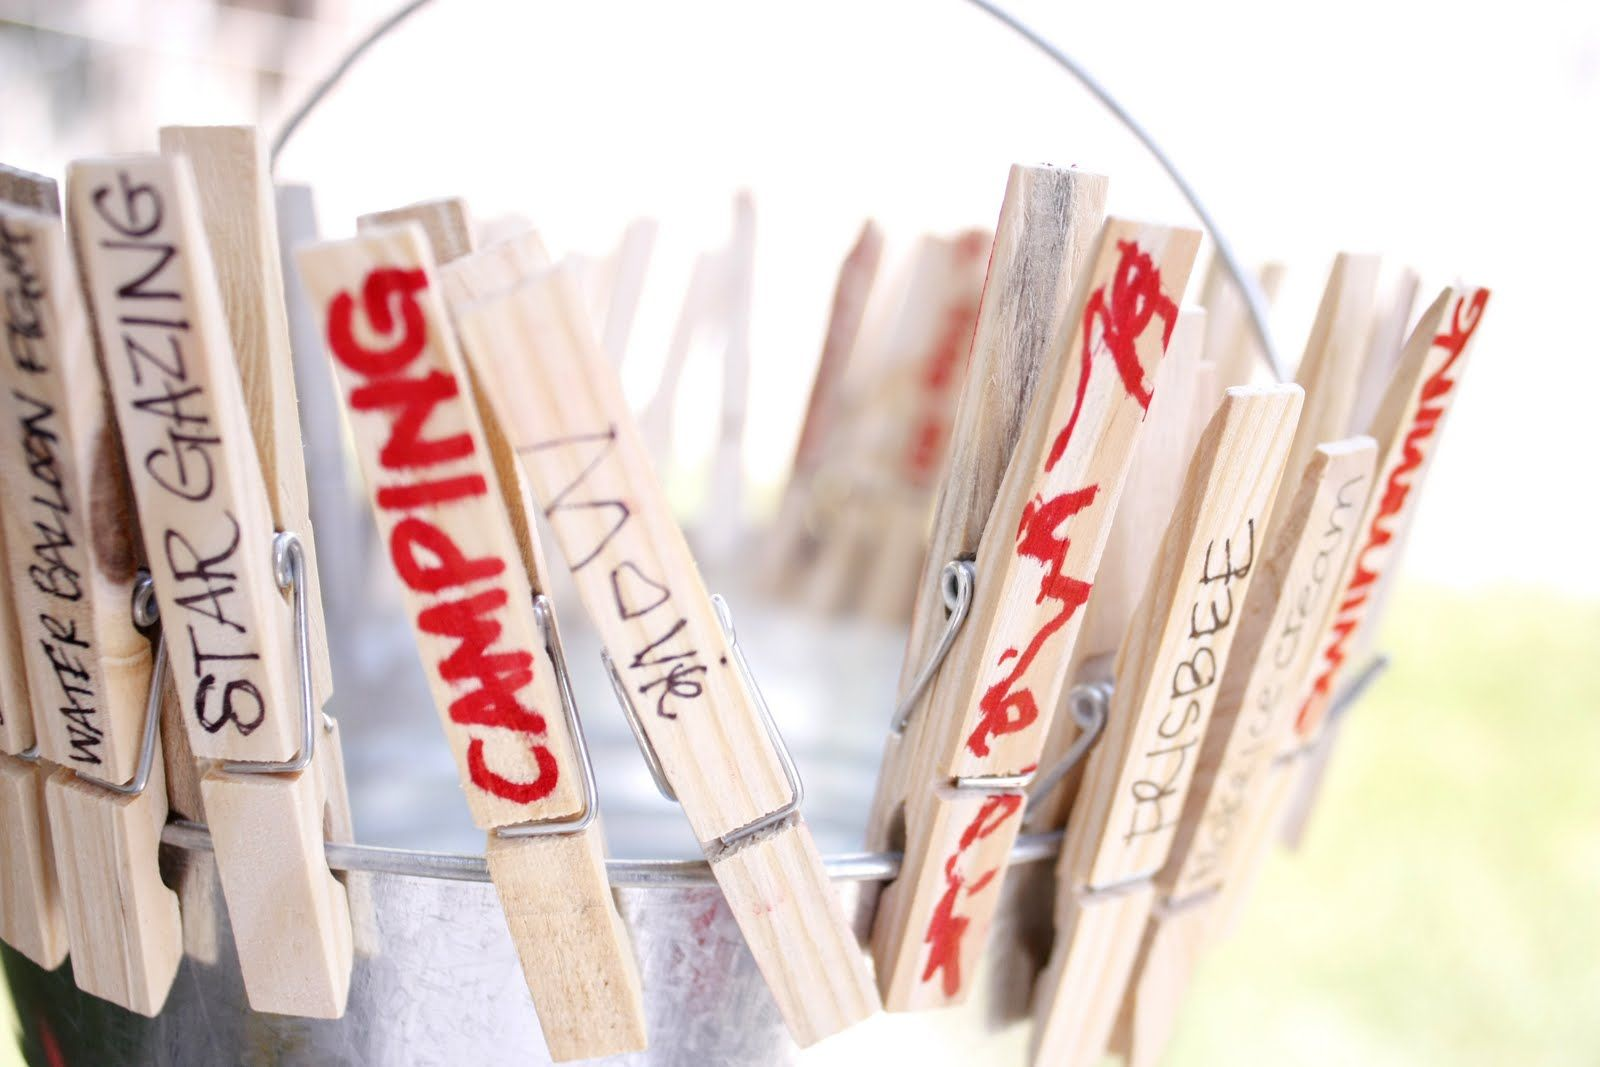 summer bucket list Have a clothes pin for each camper and what they want to do most that week. When they do that activity have them put it in the bucket. Then they have tangible evidence they did what they came to do.